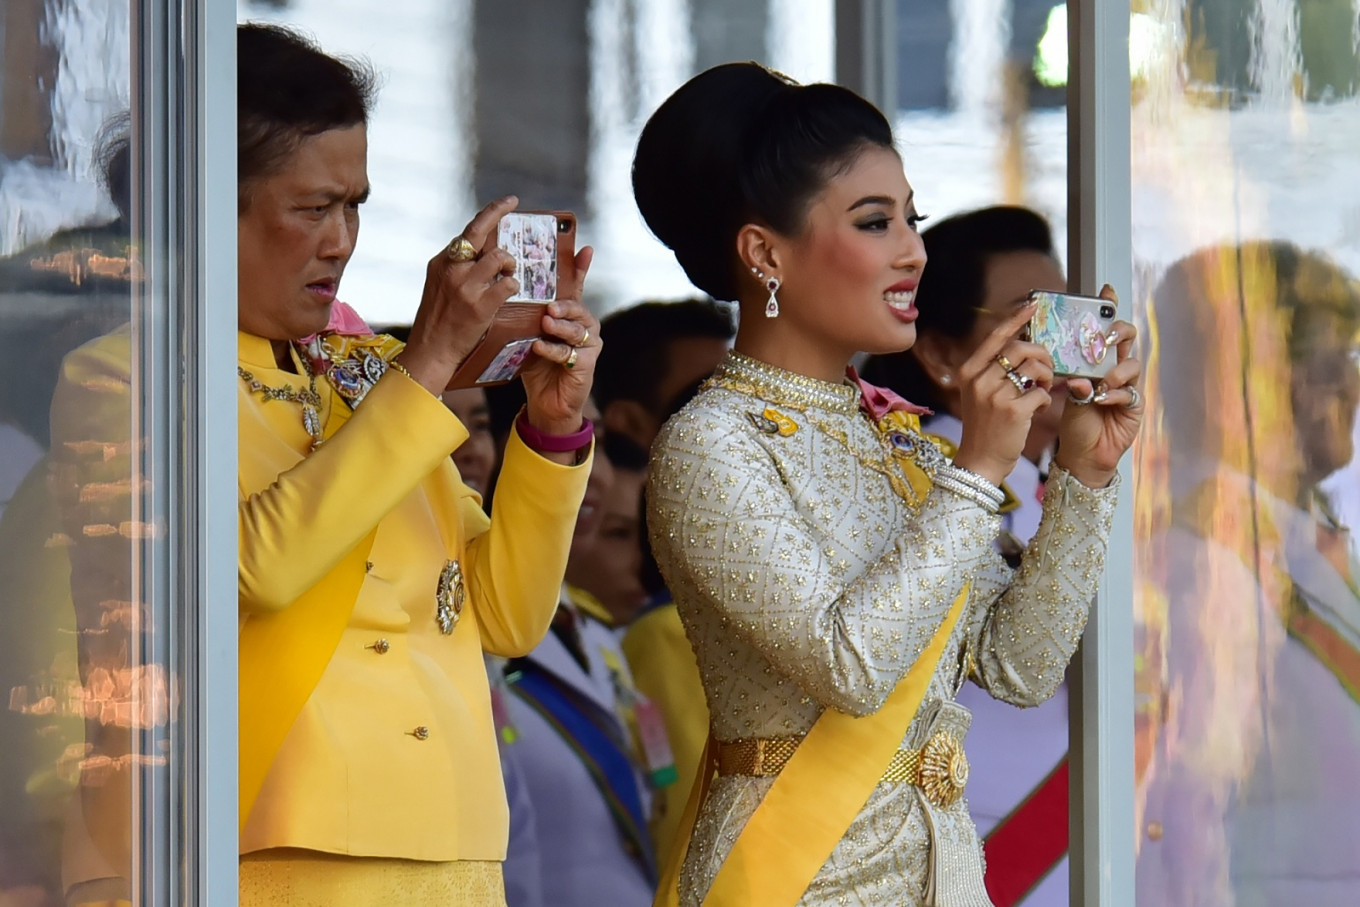 Hugs and selfies: Thai coronation gives glimpses of royal relations